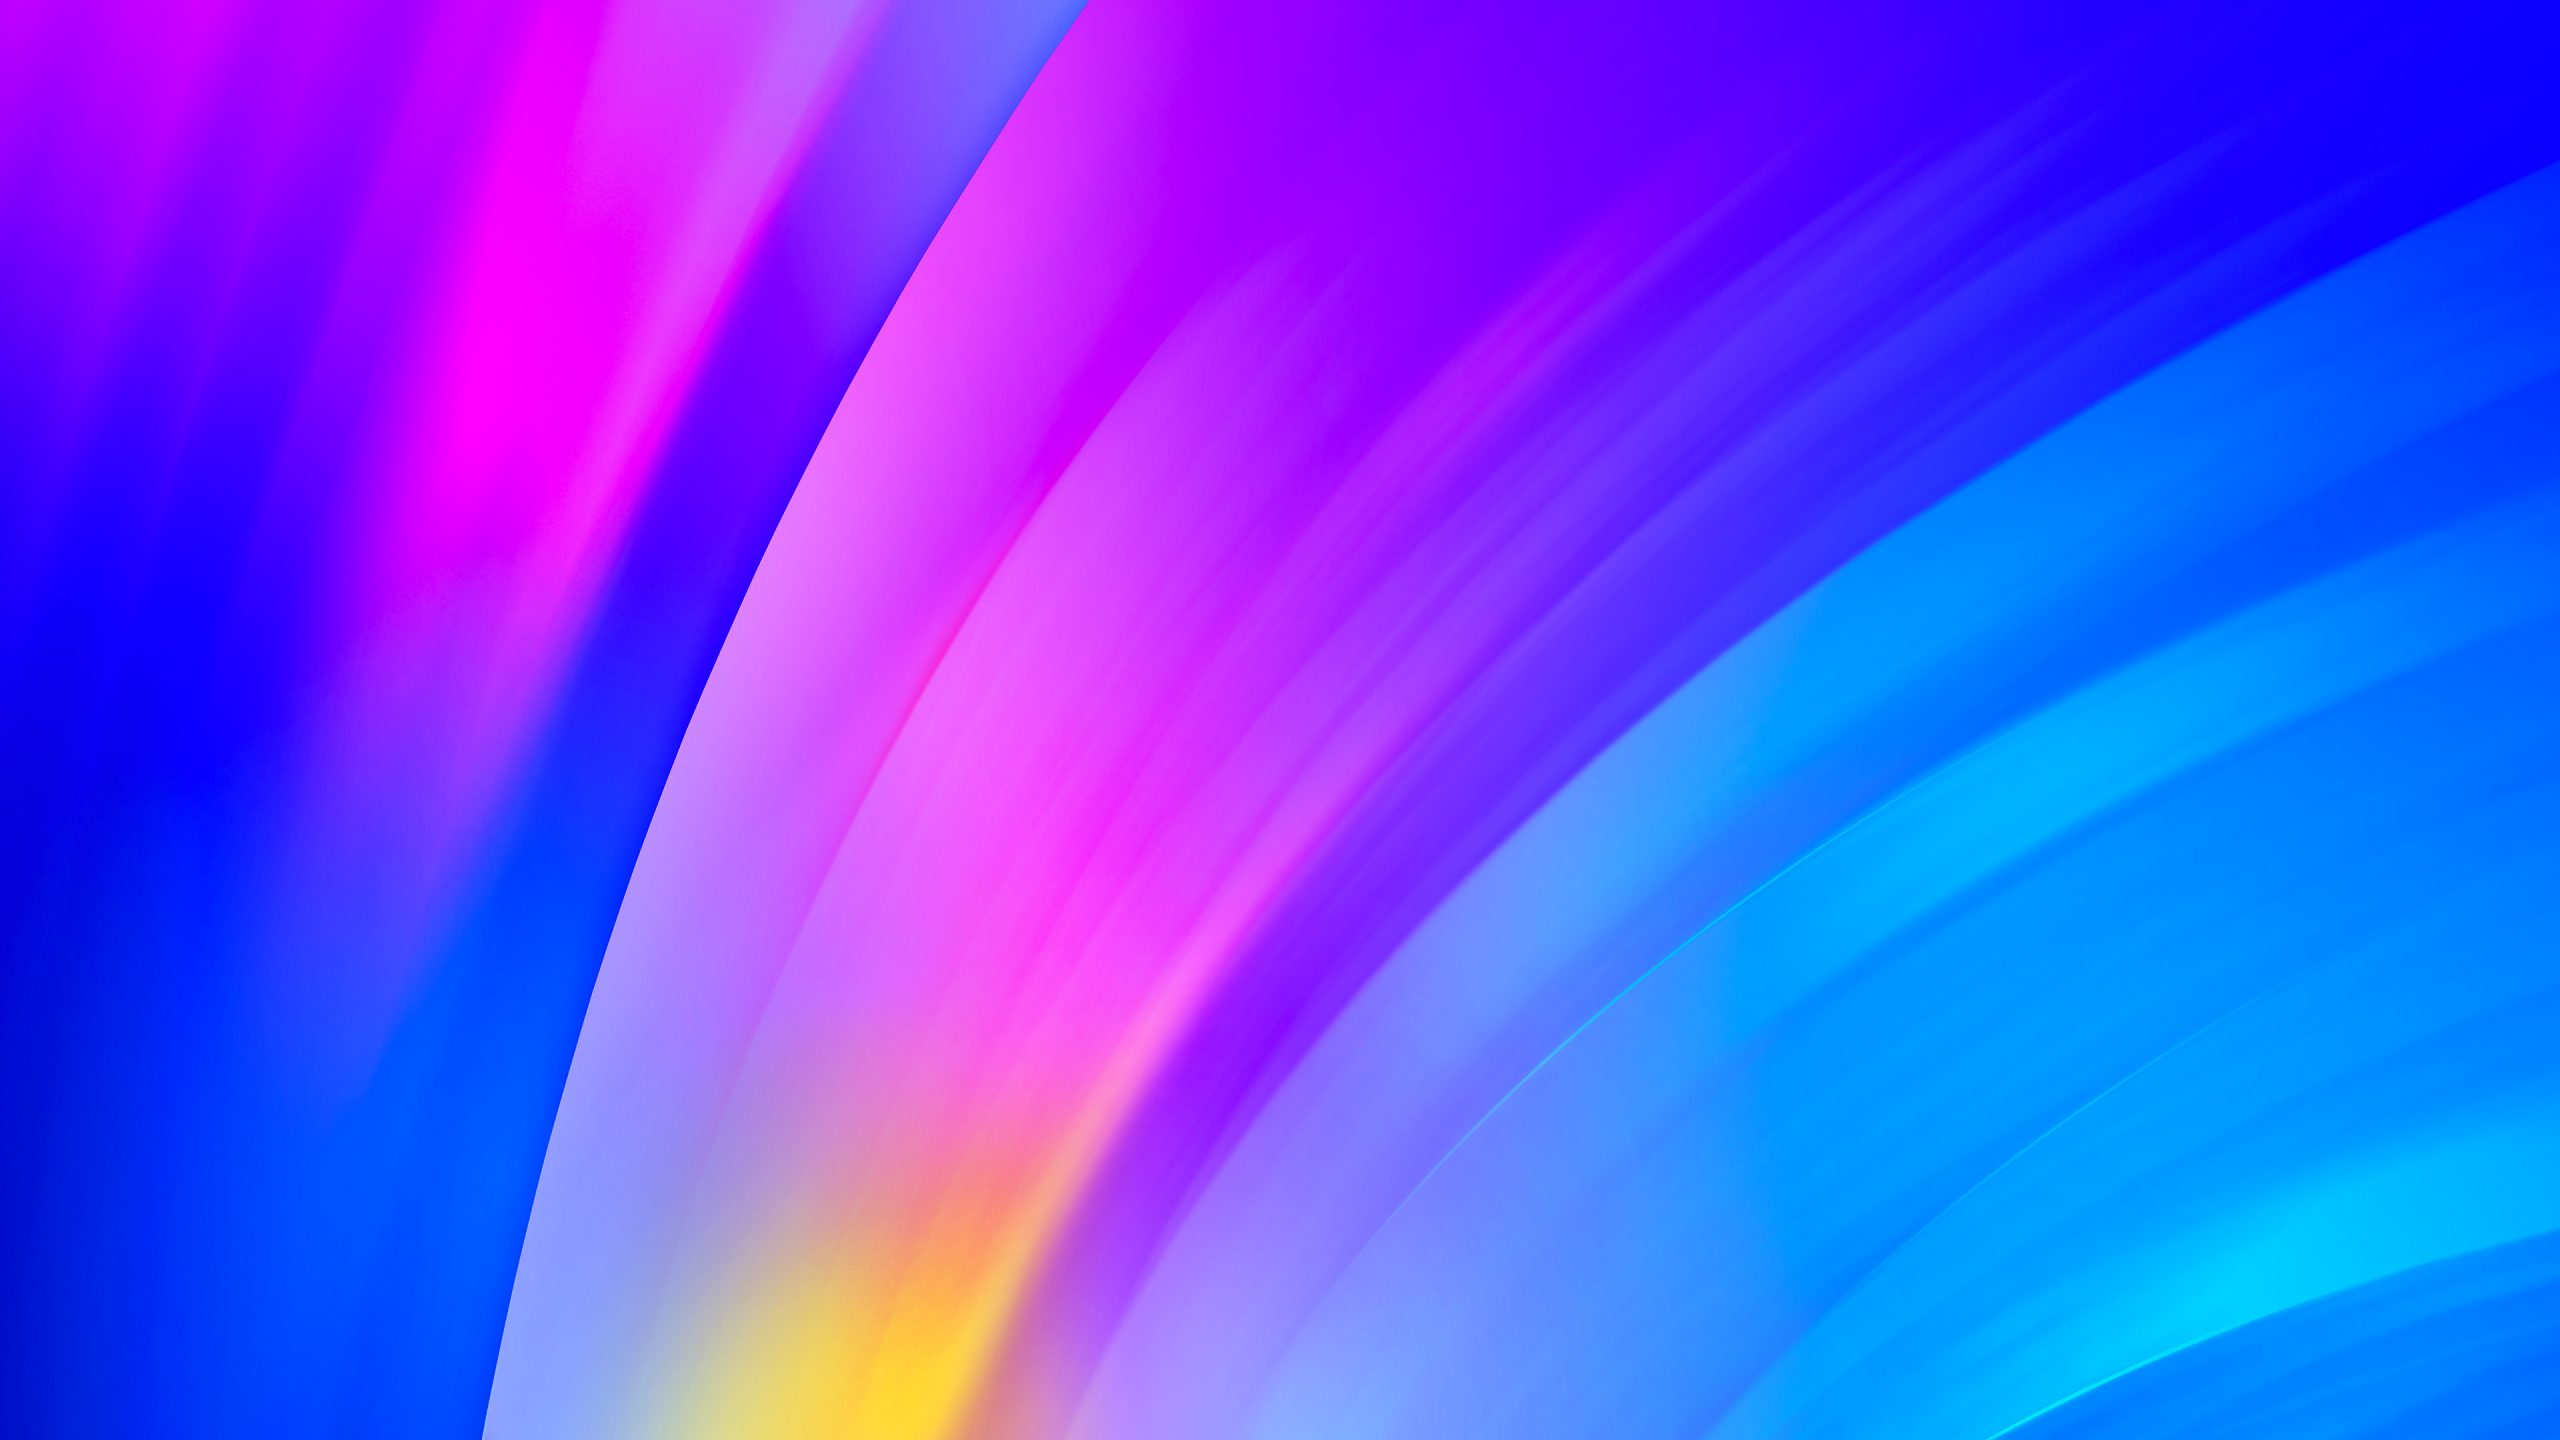 redmibook-colorful-gradient-abstract-hd-wallpaper